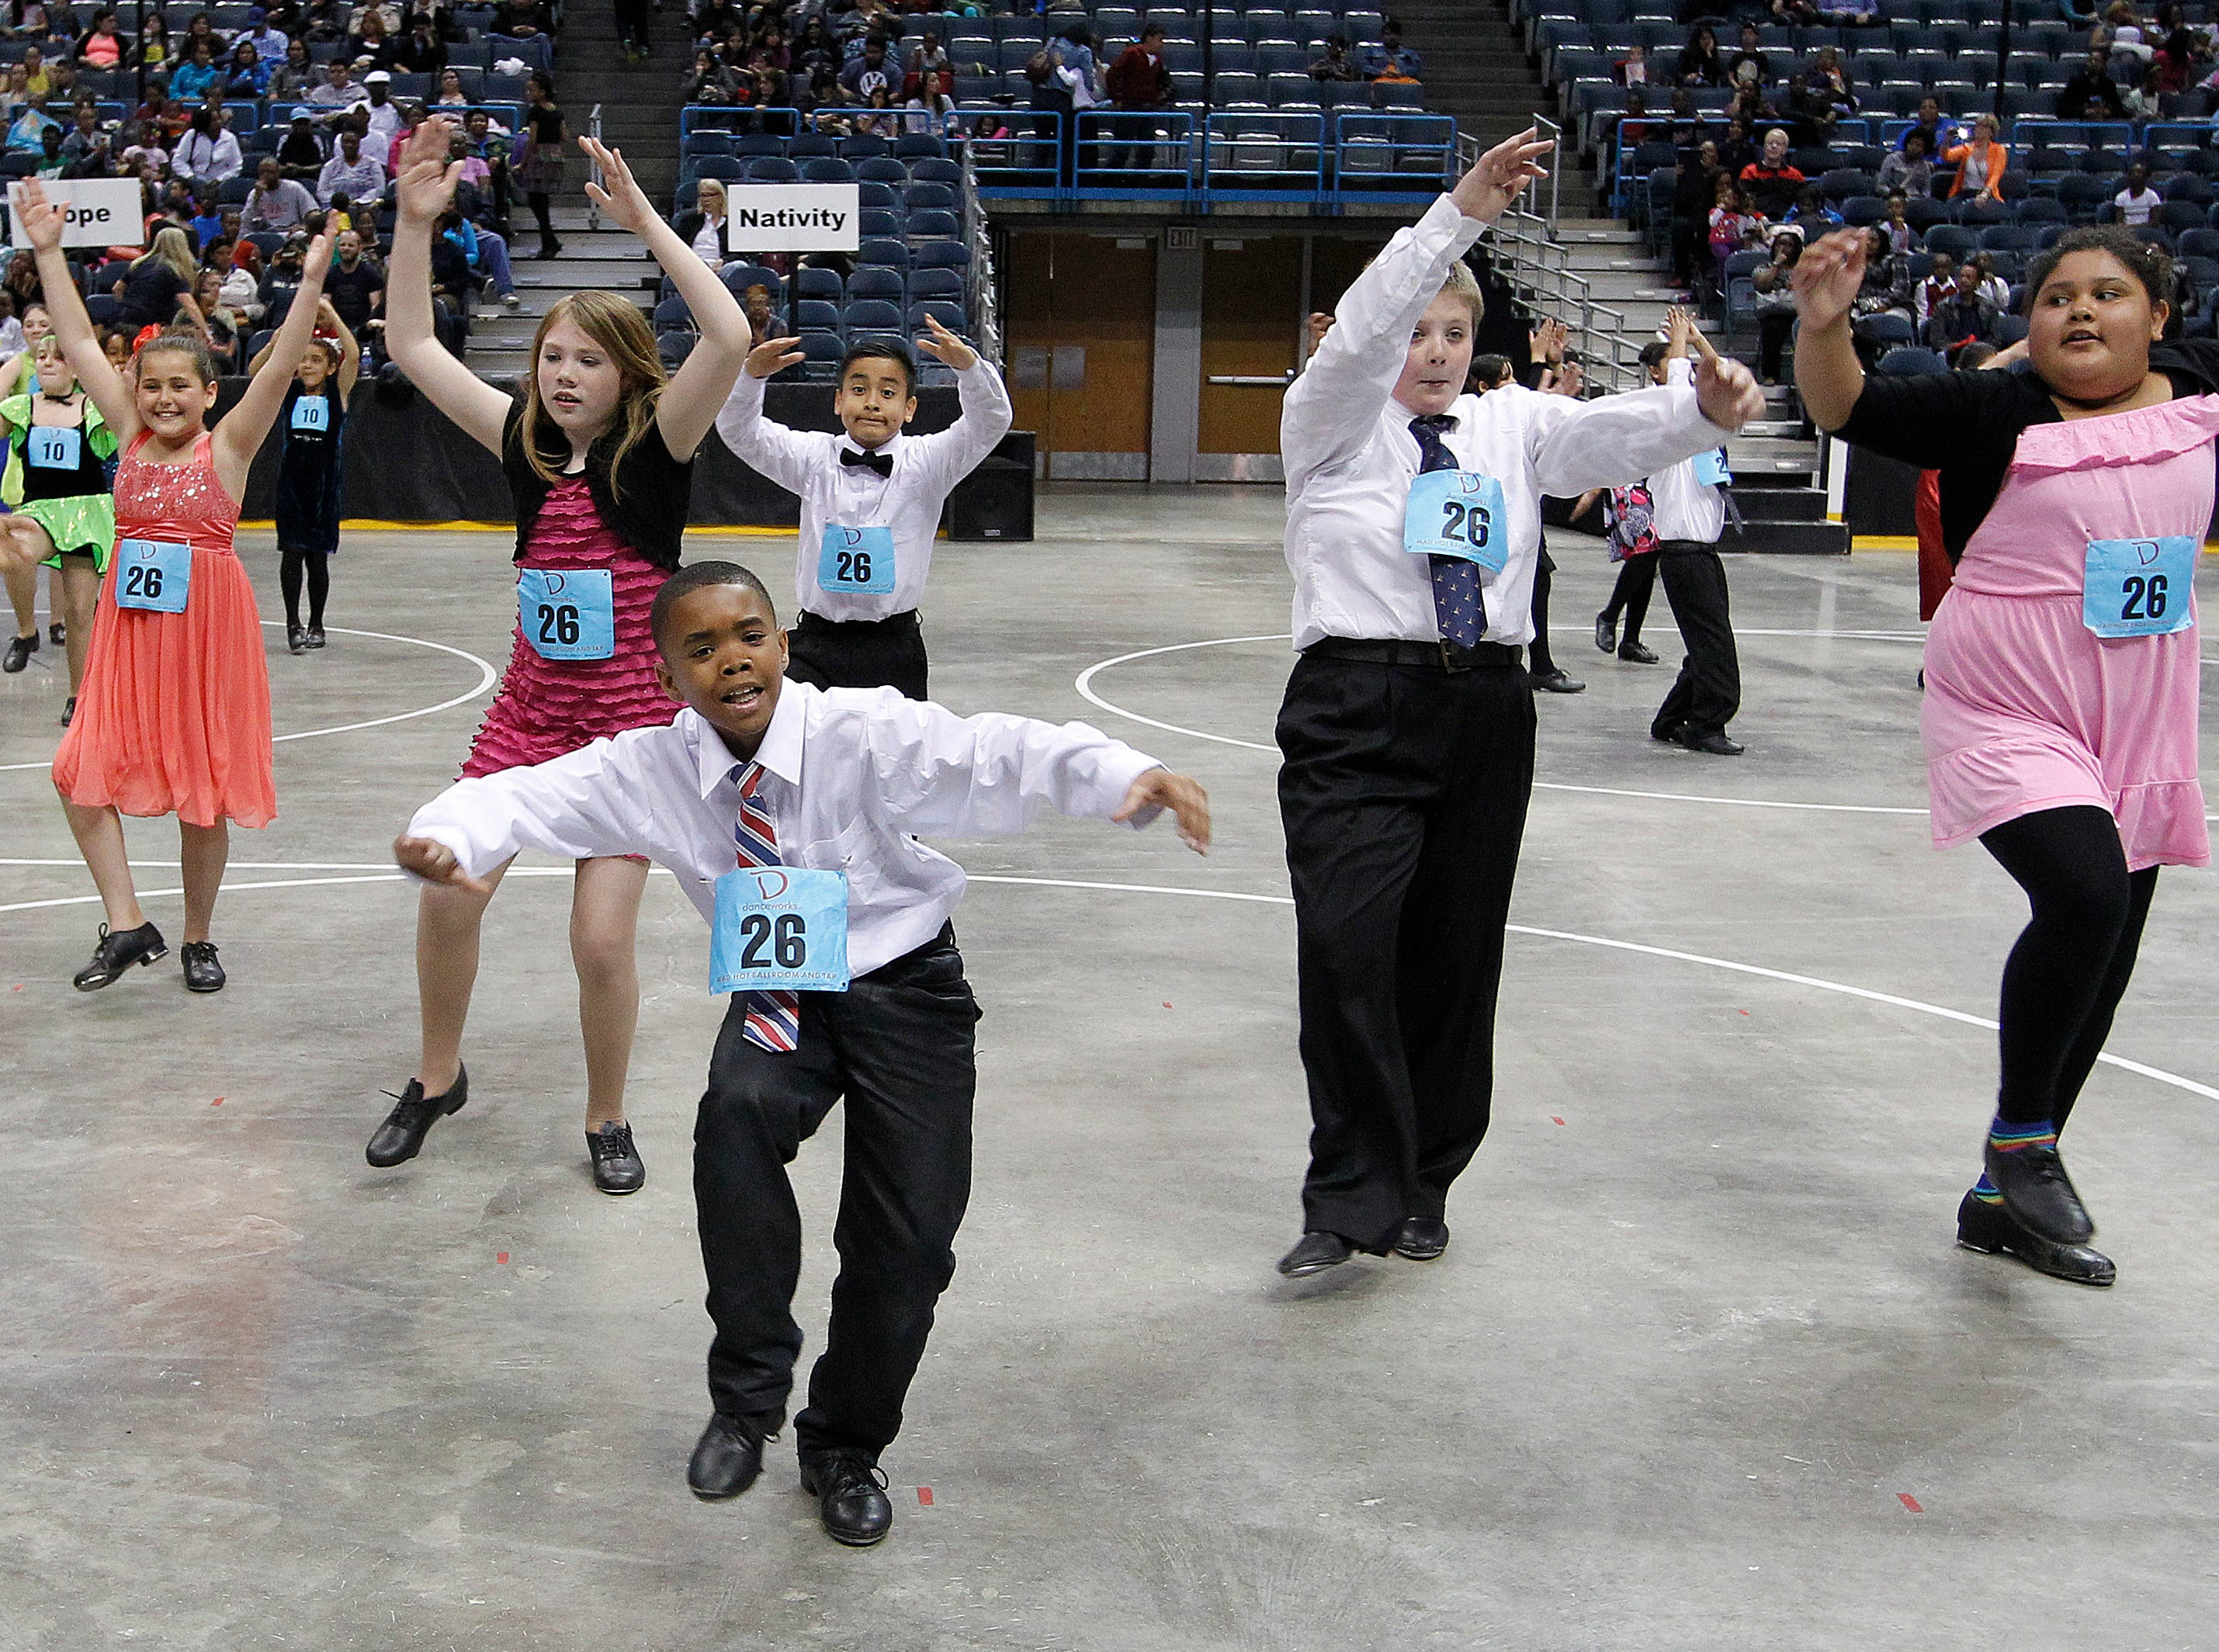 2014: Students from Lowell Elementary School dance during the annual Mad Hot Ballroom and Tap competition at the BMO Harris Bradley Center.